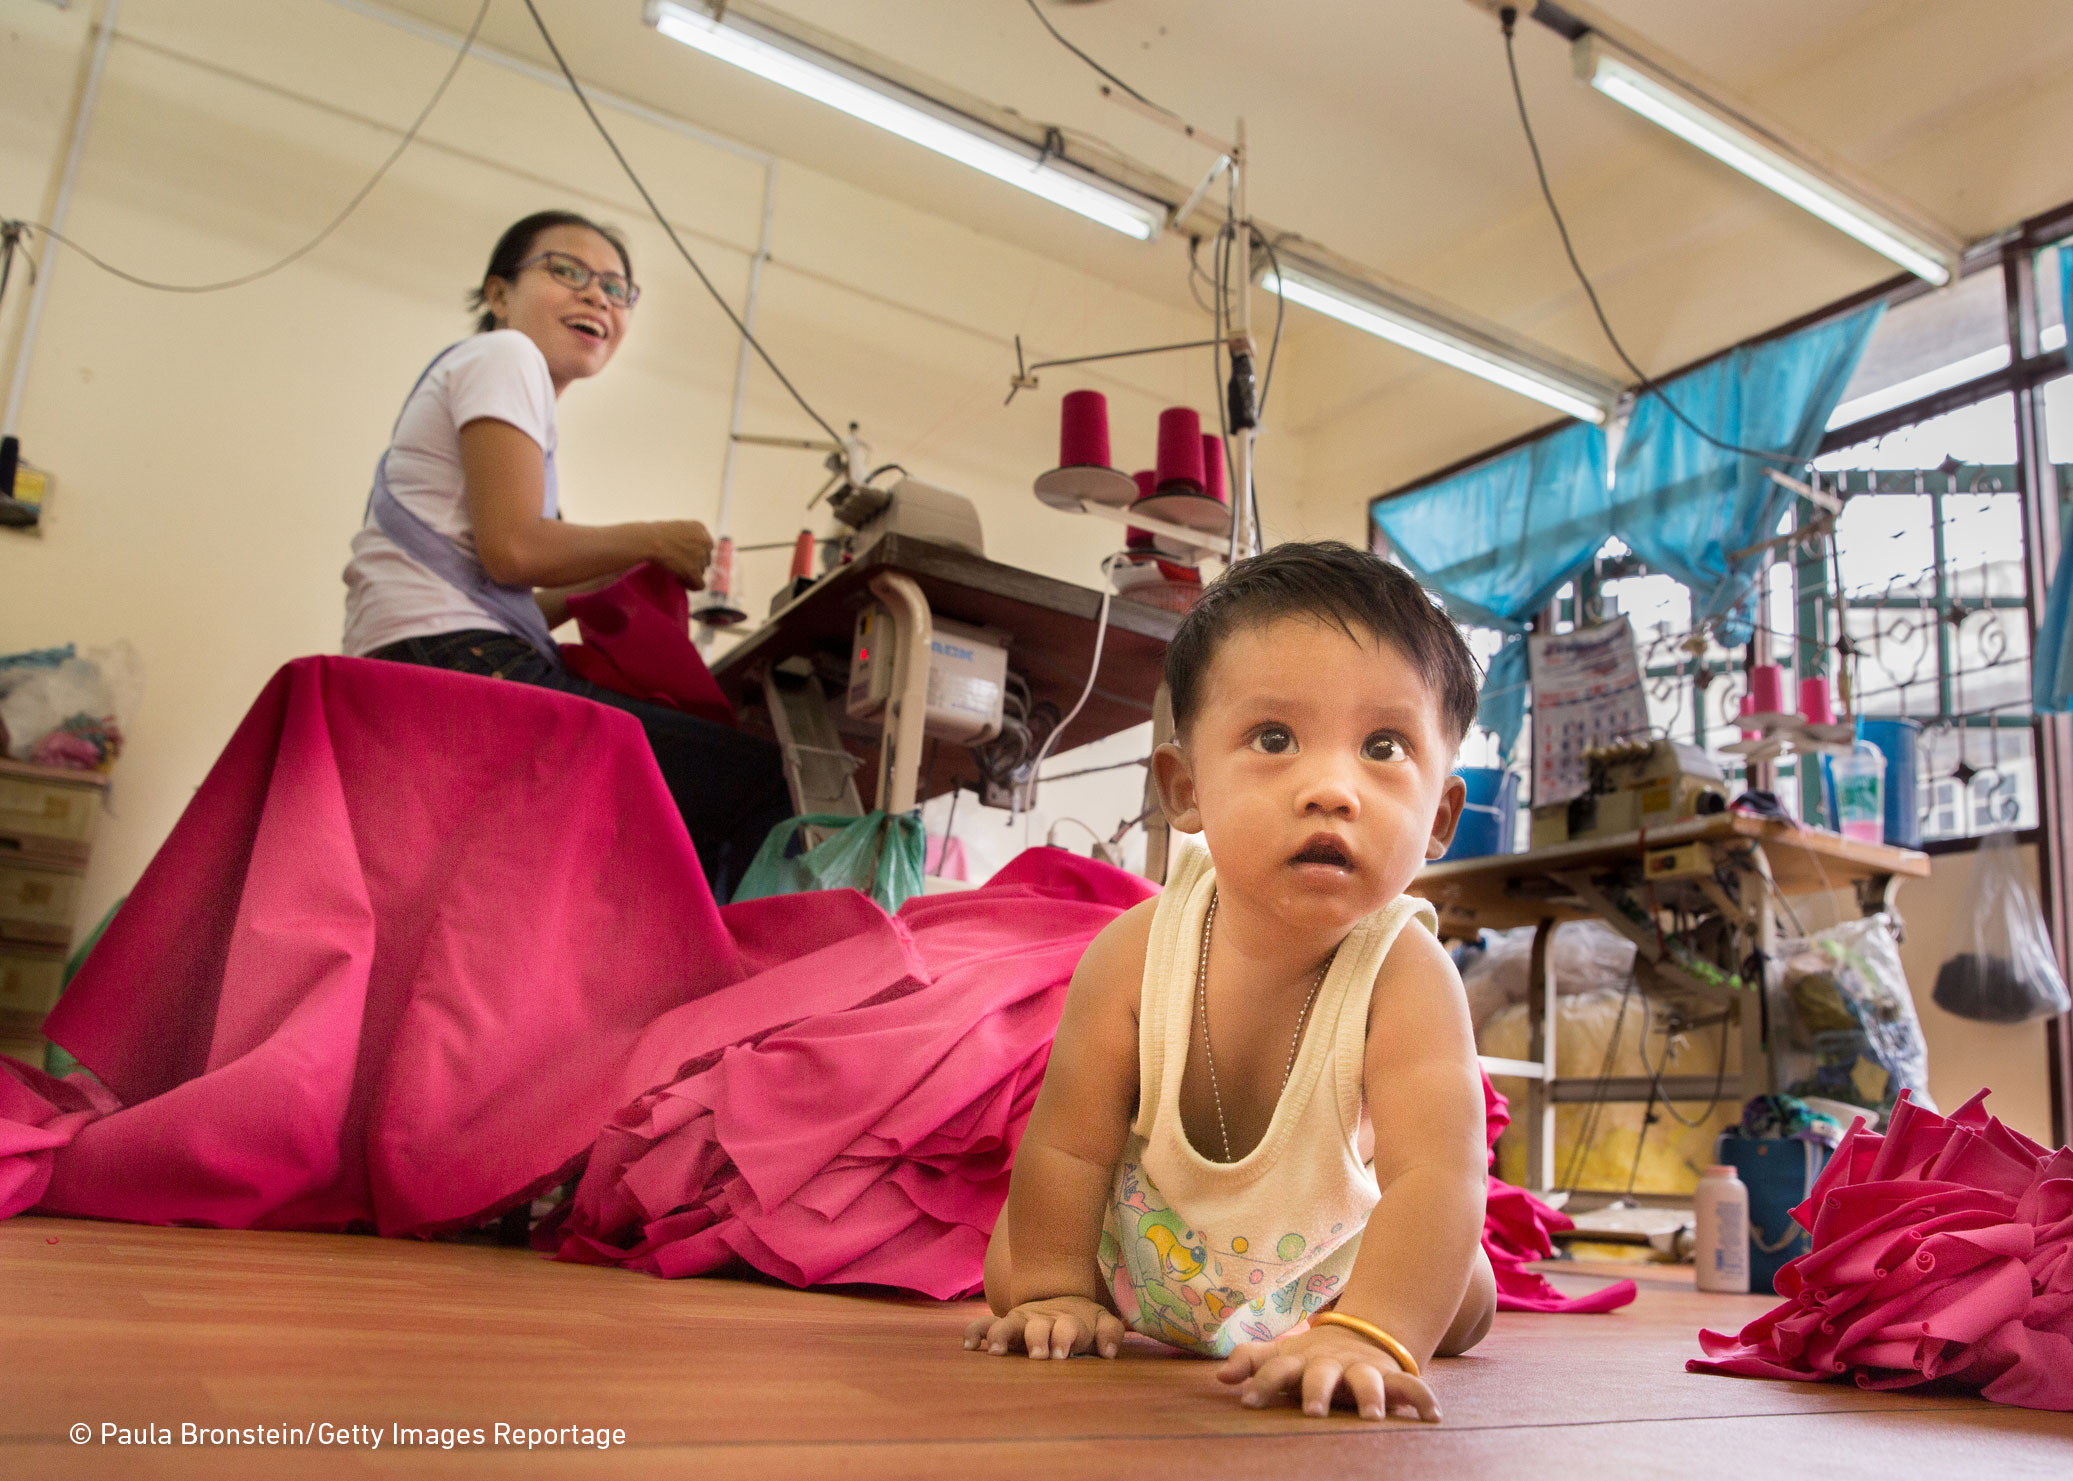 A toddler crawls to the camera as his mother sews garments behind him. Dominant colour - hot pink from the swathes of cloth which separate the child from their mother.